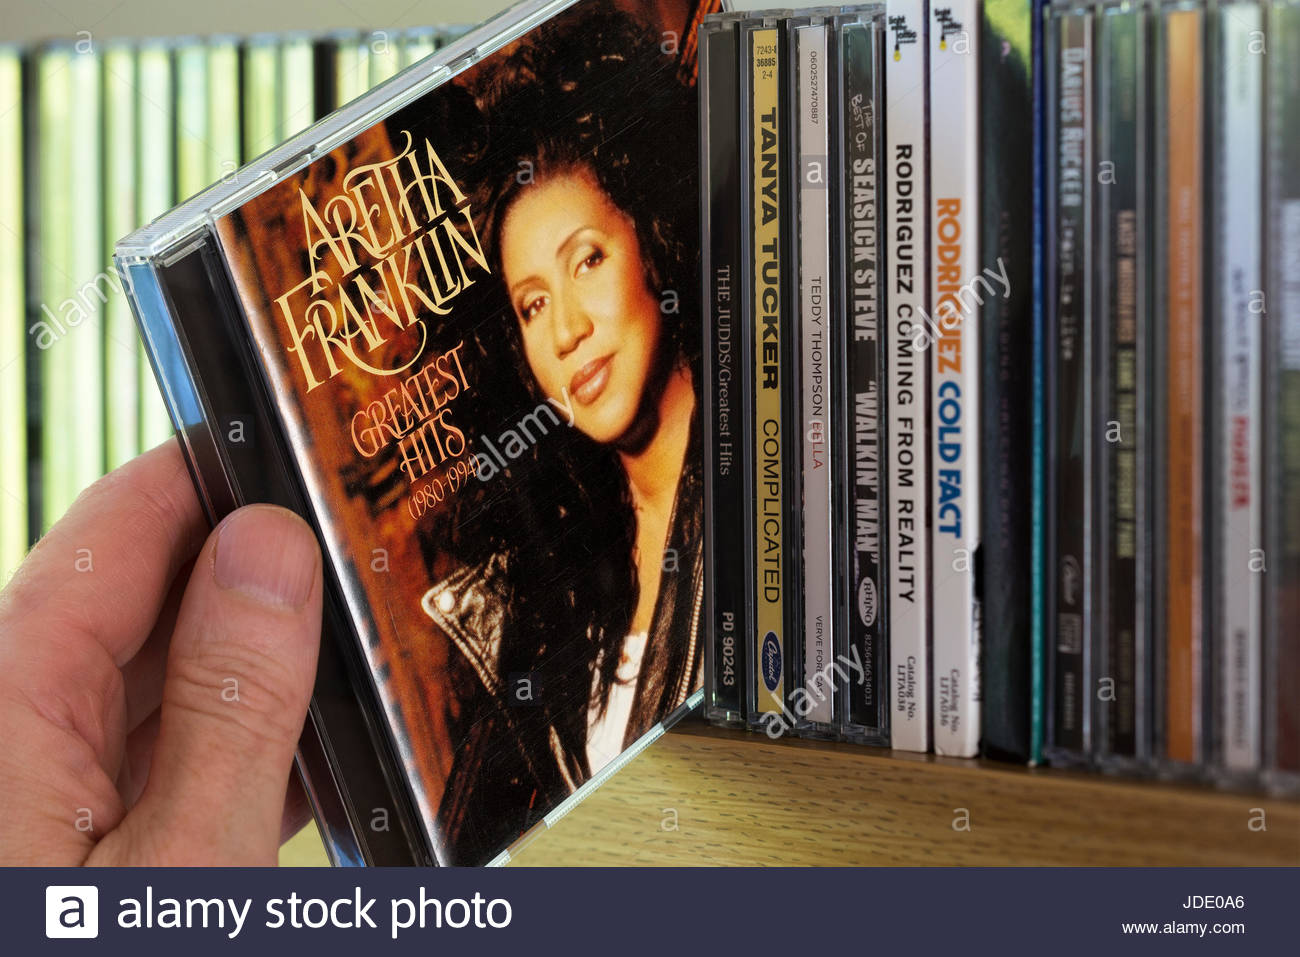 Aretha Franklin Greatest Hits 1980 1994 CD Being Chosen From A Shelf Of Other CDs Dorset England